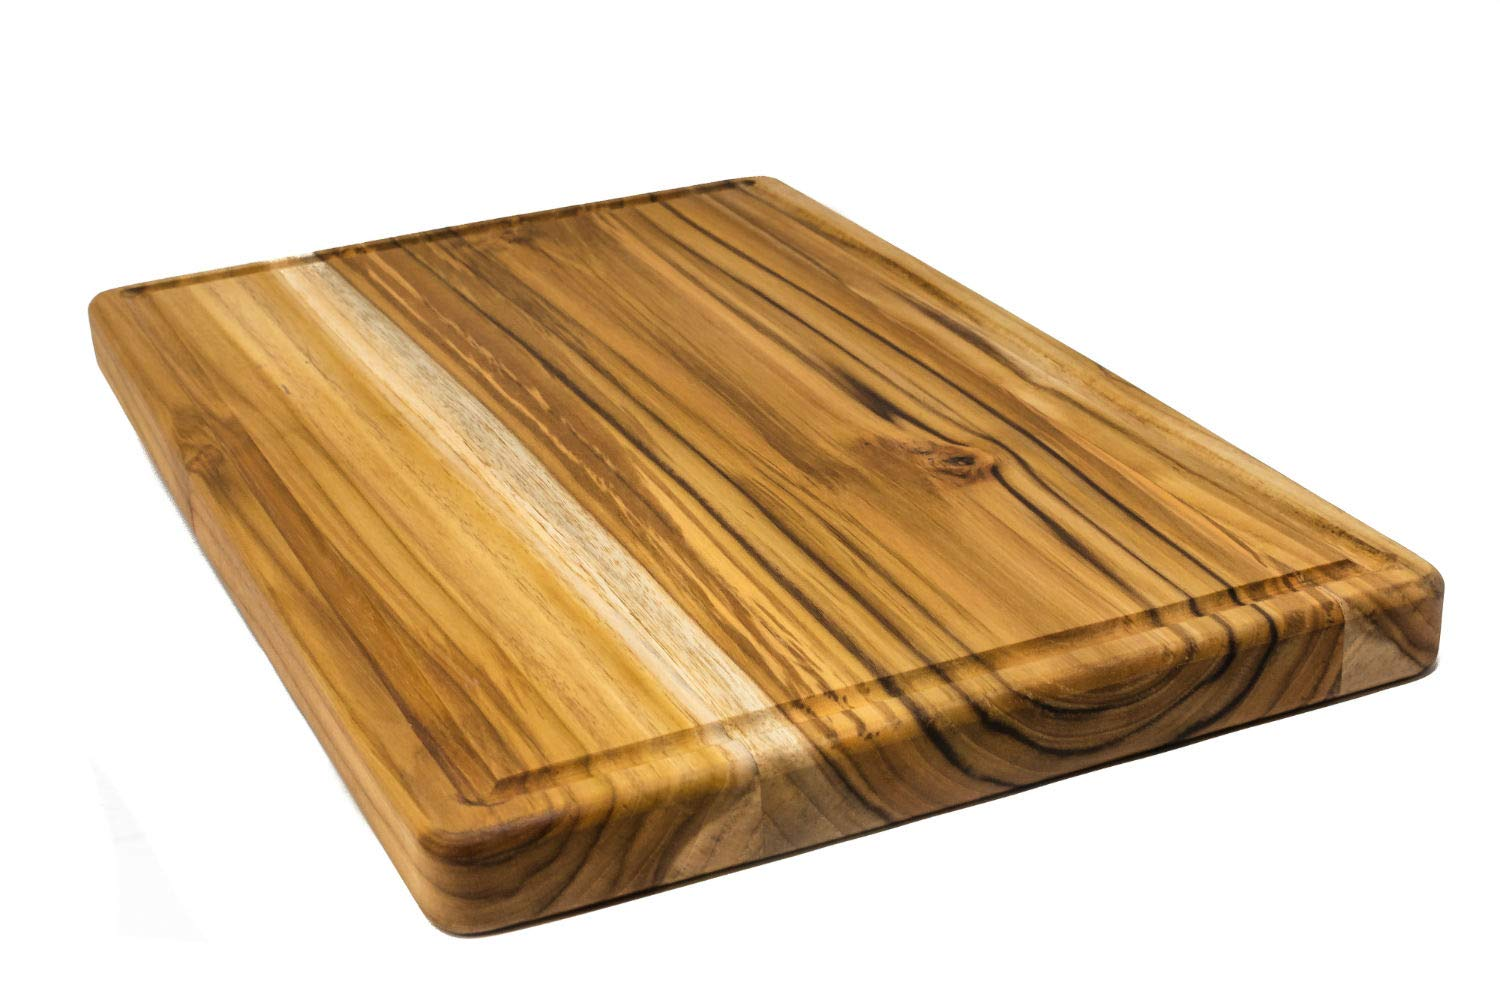 Large Reversible Teak Wood Cutting Board with Juice Groove - Hardwood Chopping Block and Serving Tray (17x11x1 Inches) by Do it wiser (Image #6)